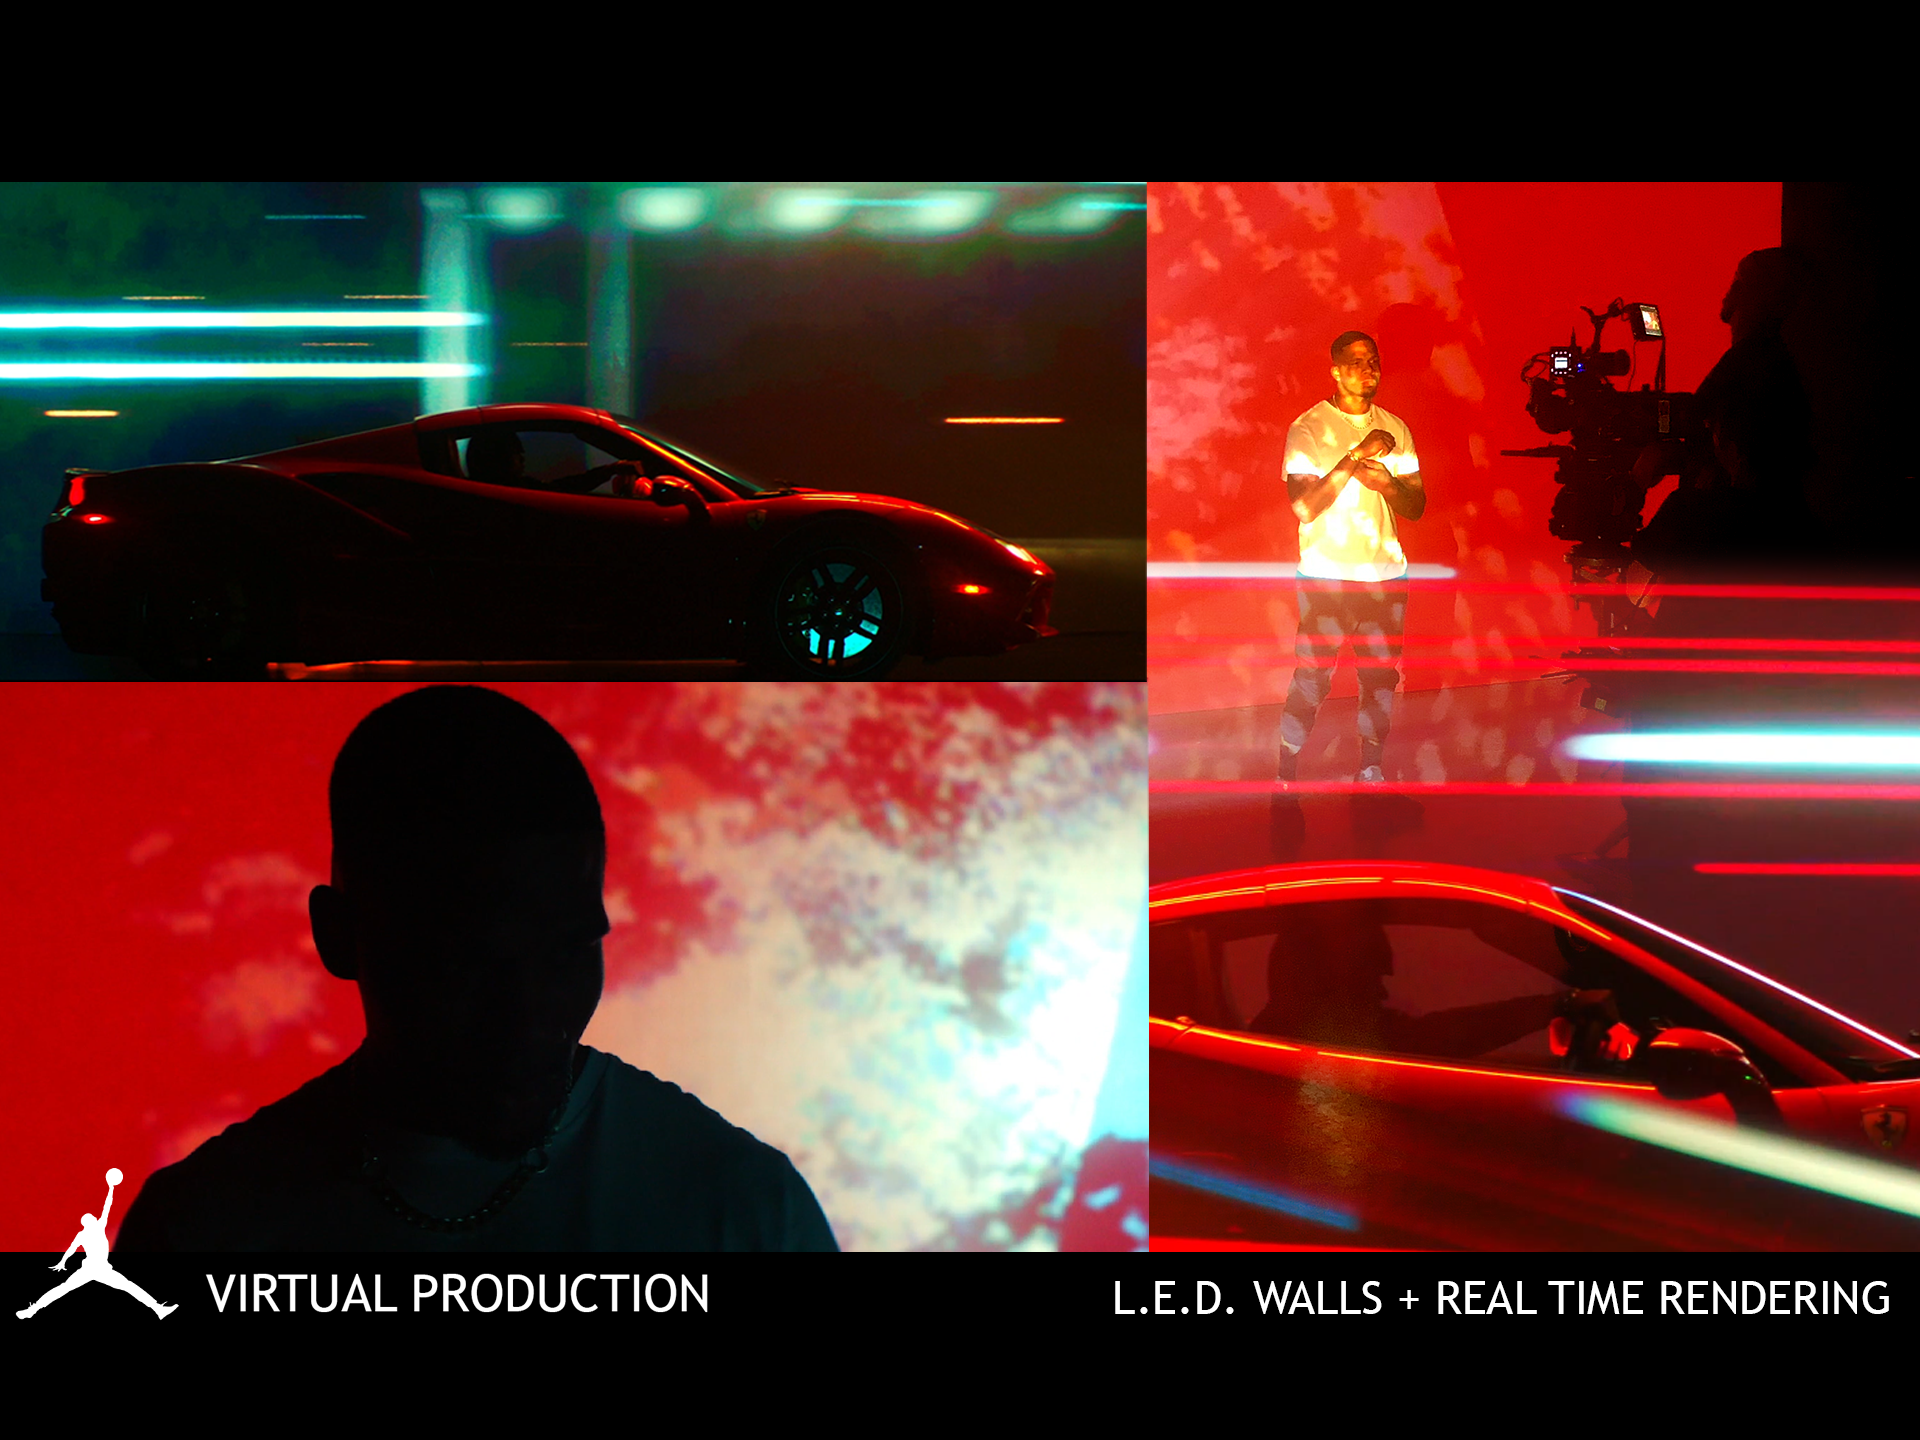 VIRTUAL PRODUCTION